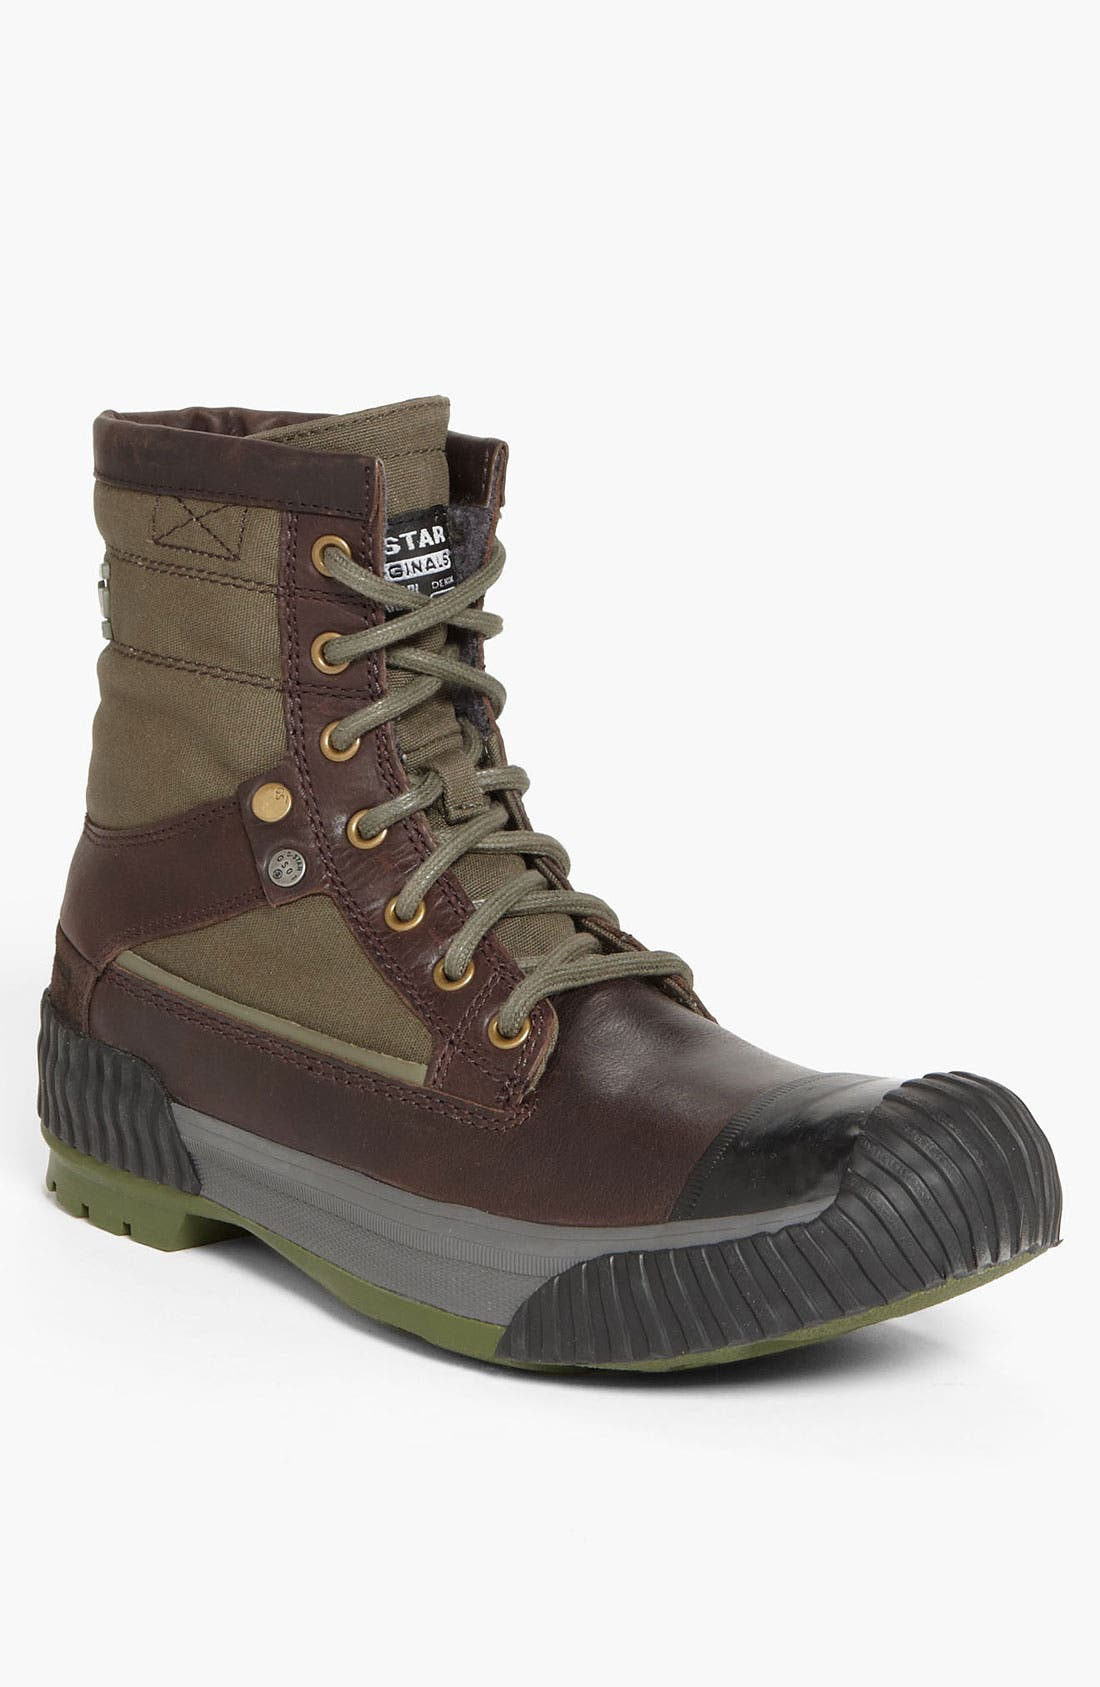 Alternate Image 1 Selected - G-Star Raw 'Marker Mix' Boot